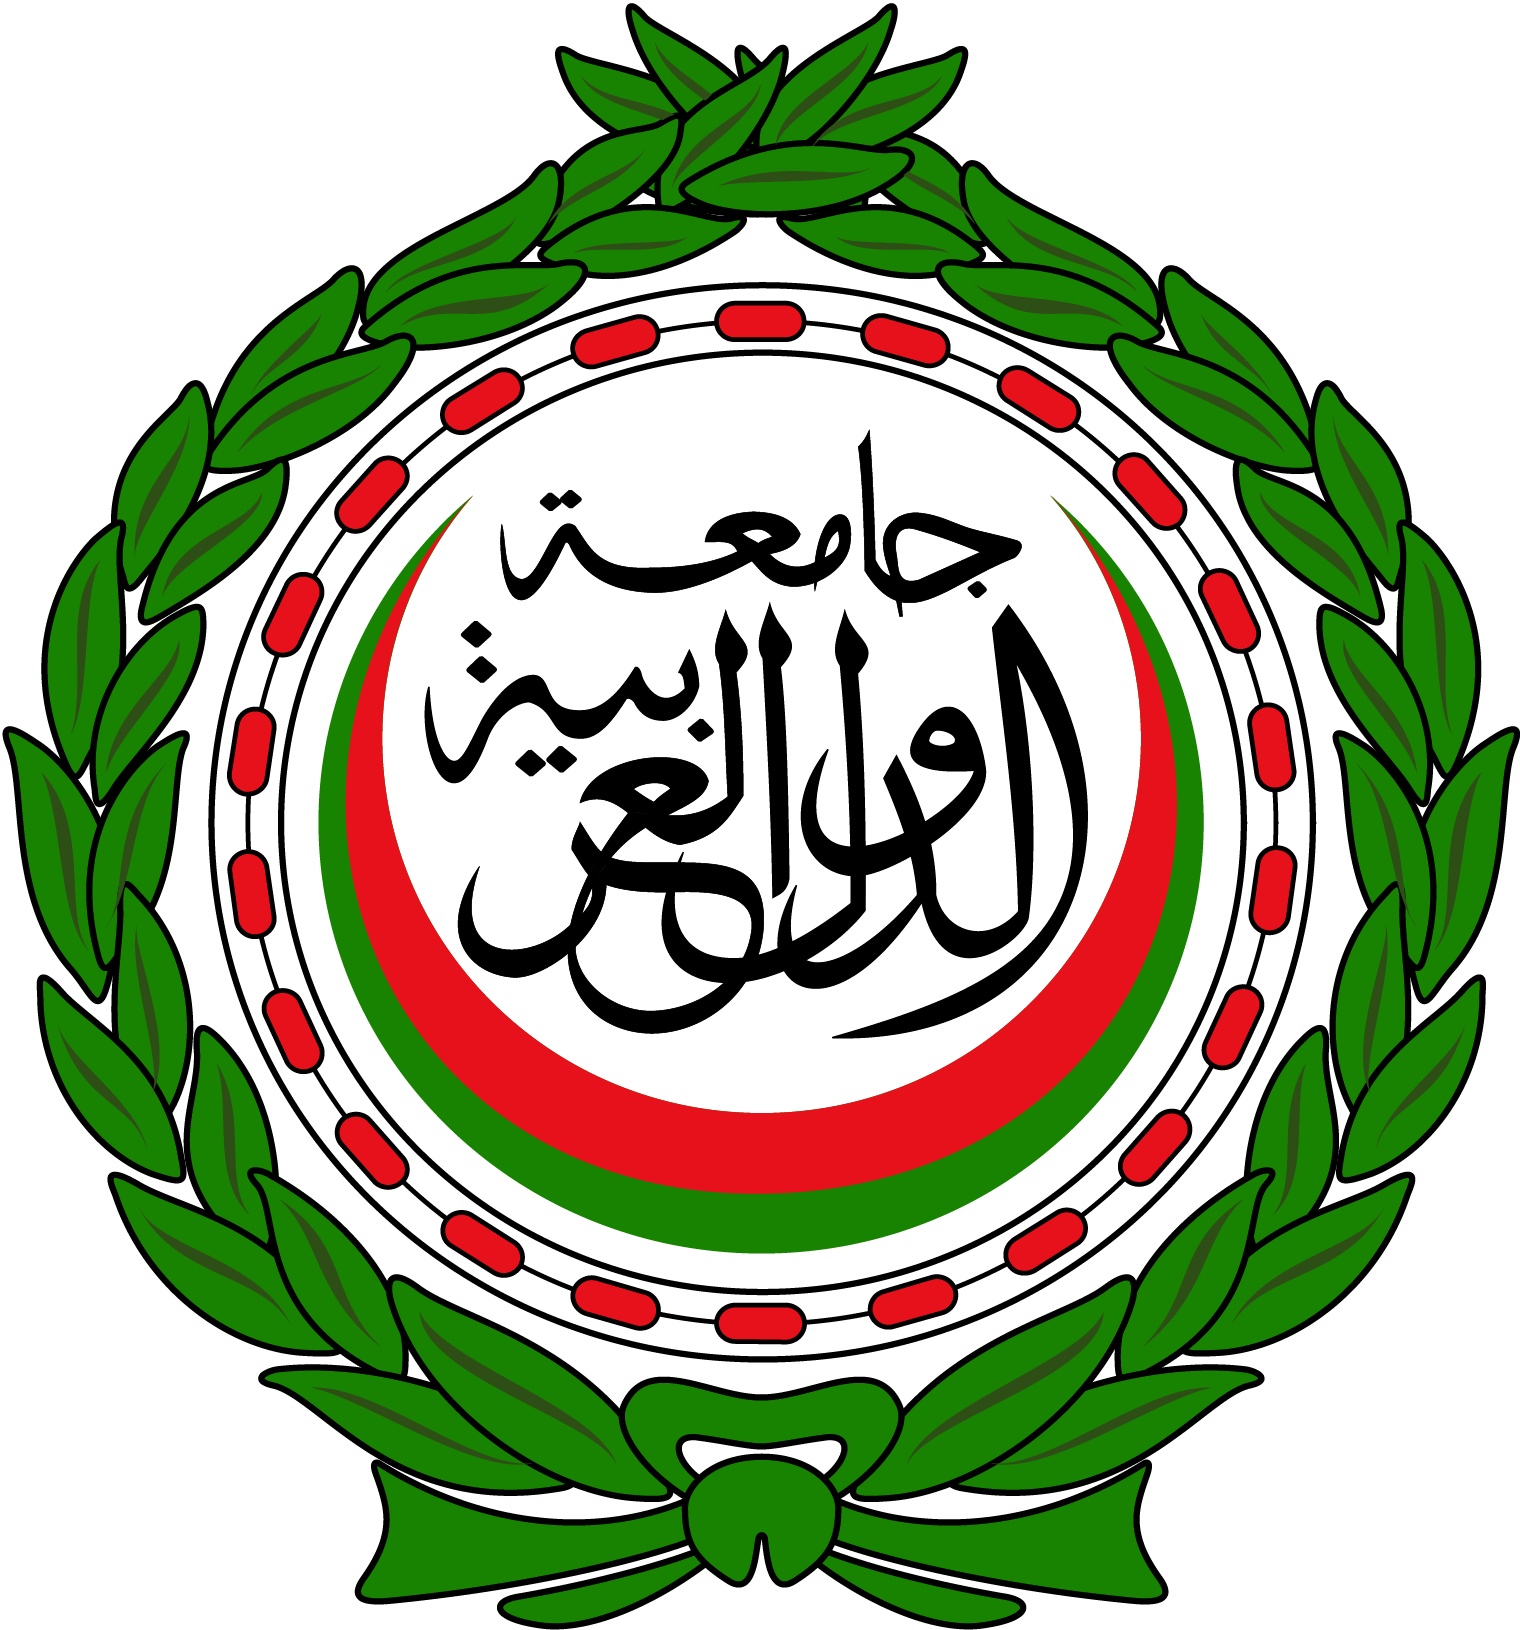 arab league emblem freelogovectors.net